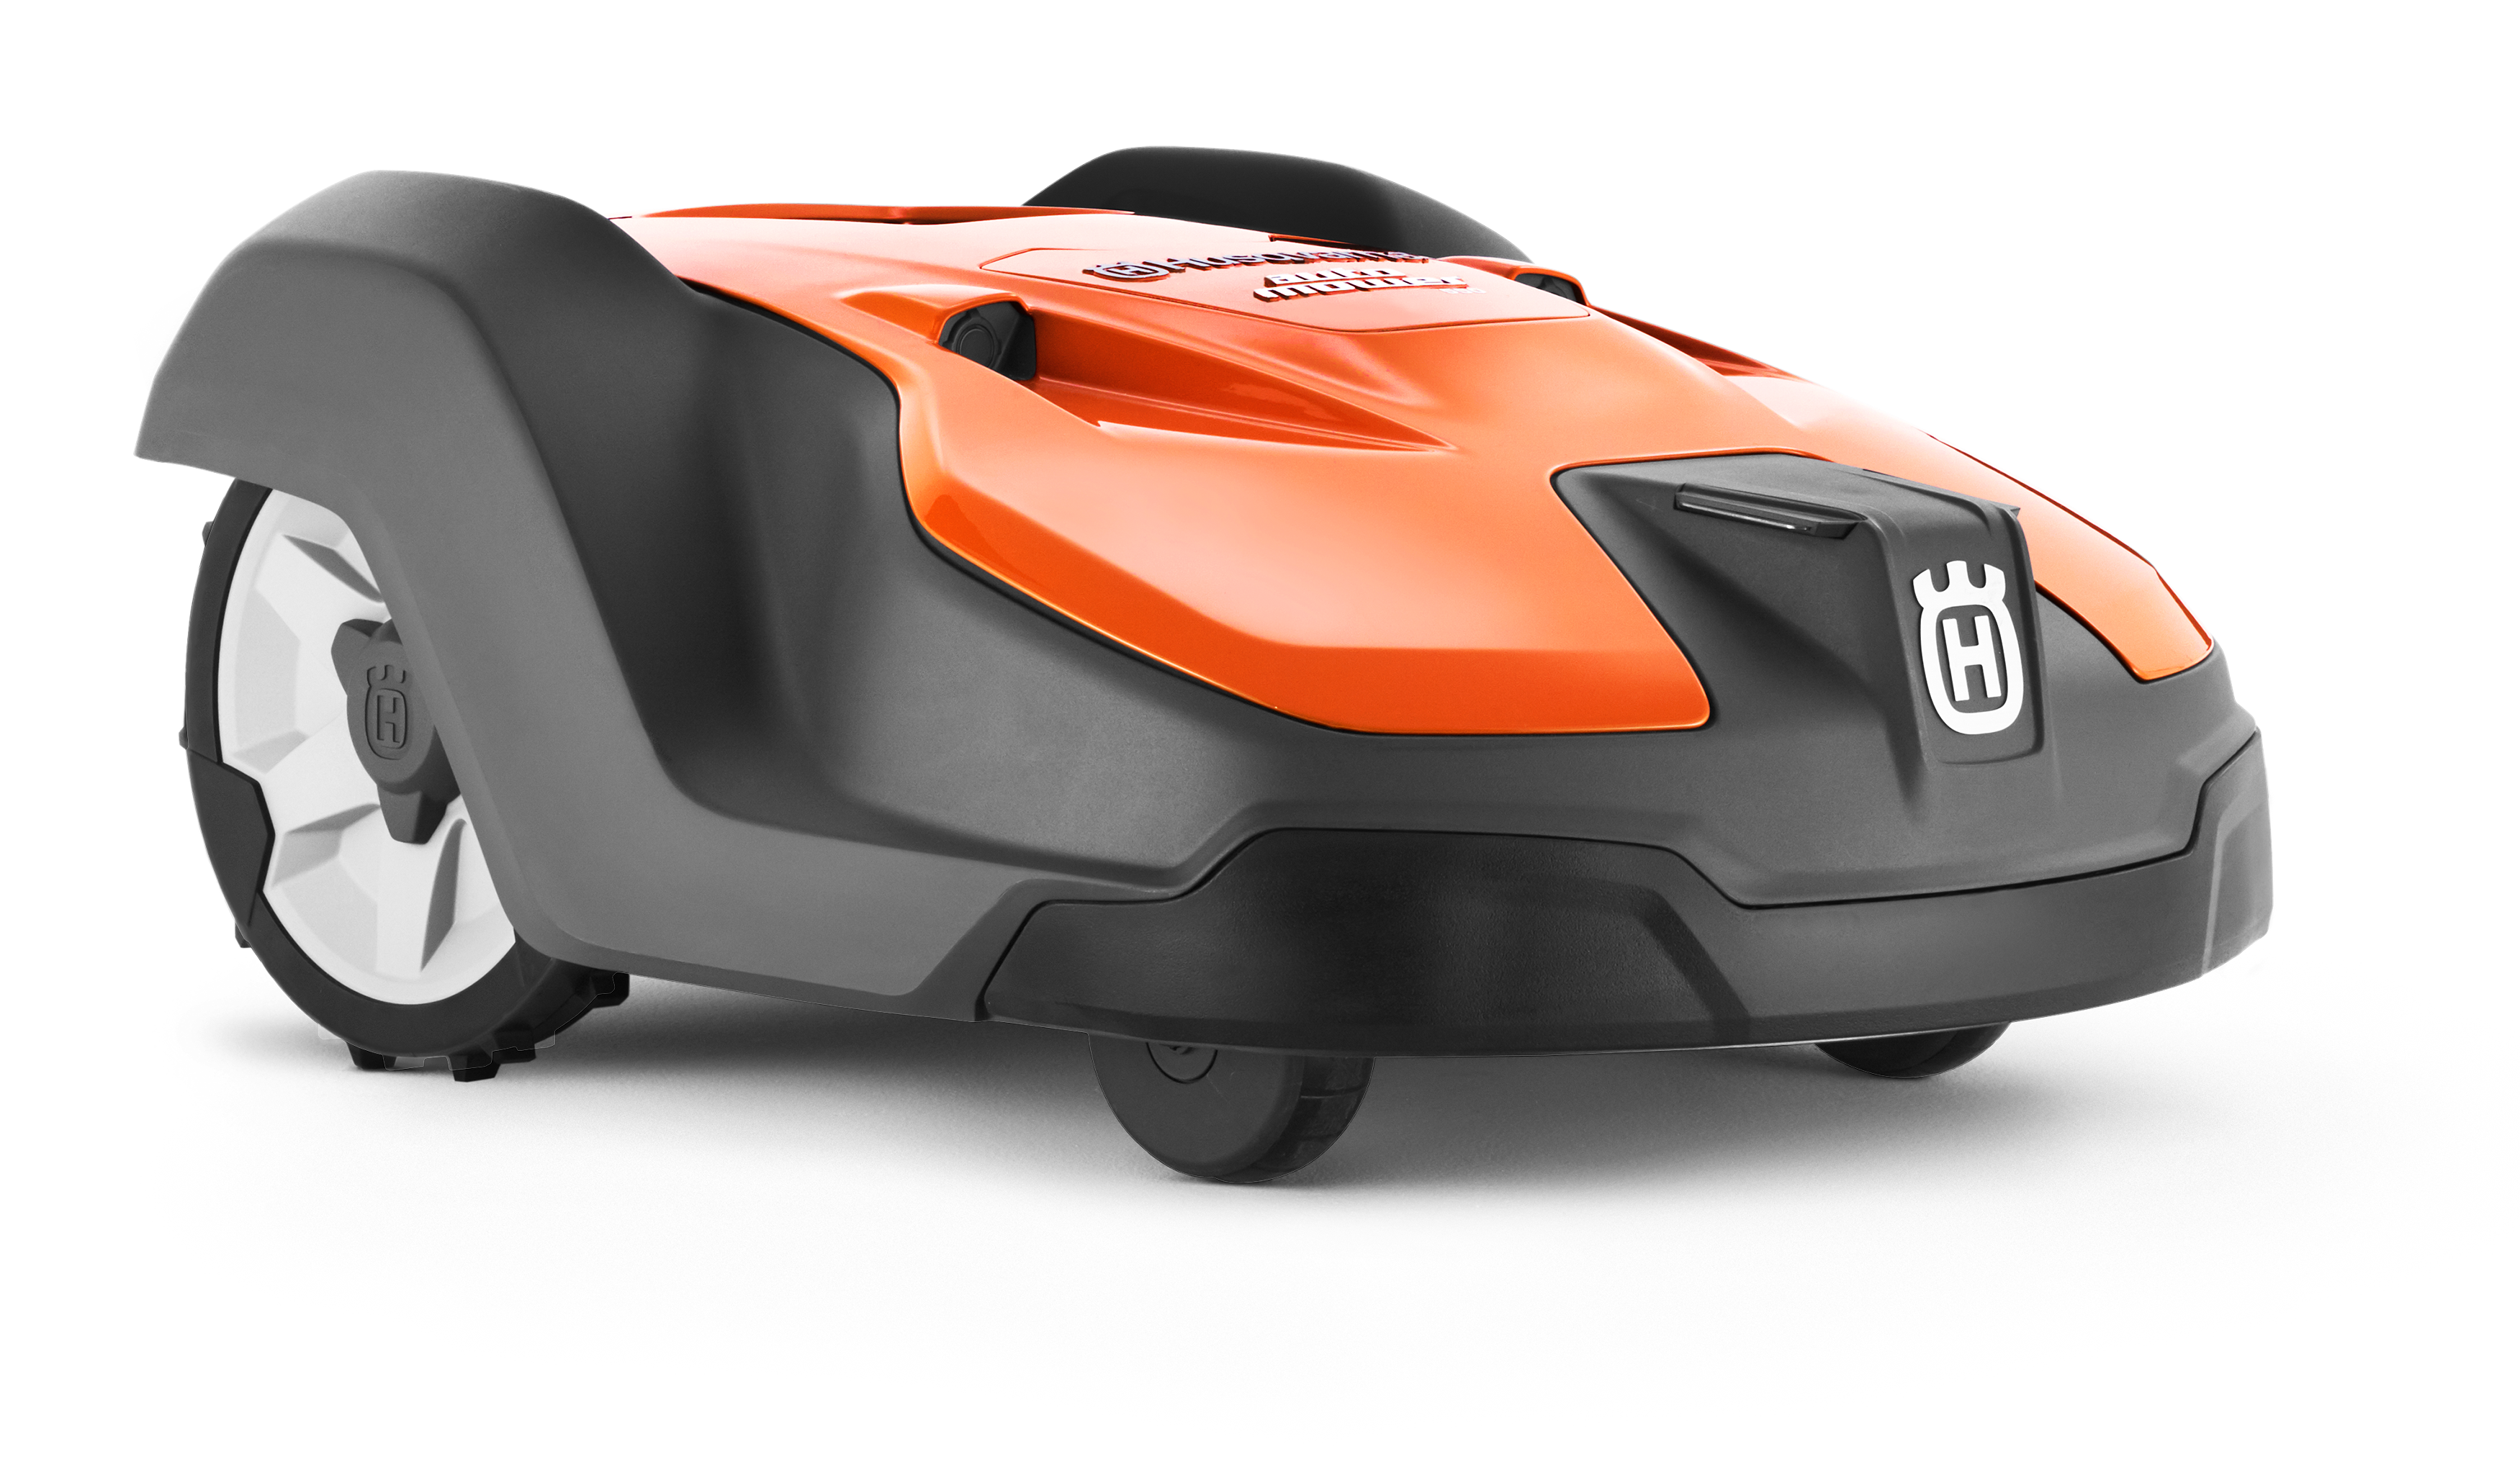 HUSQVARNA AM550 Robotic Mower